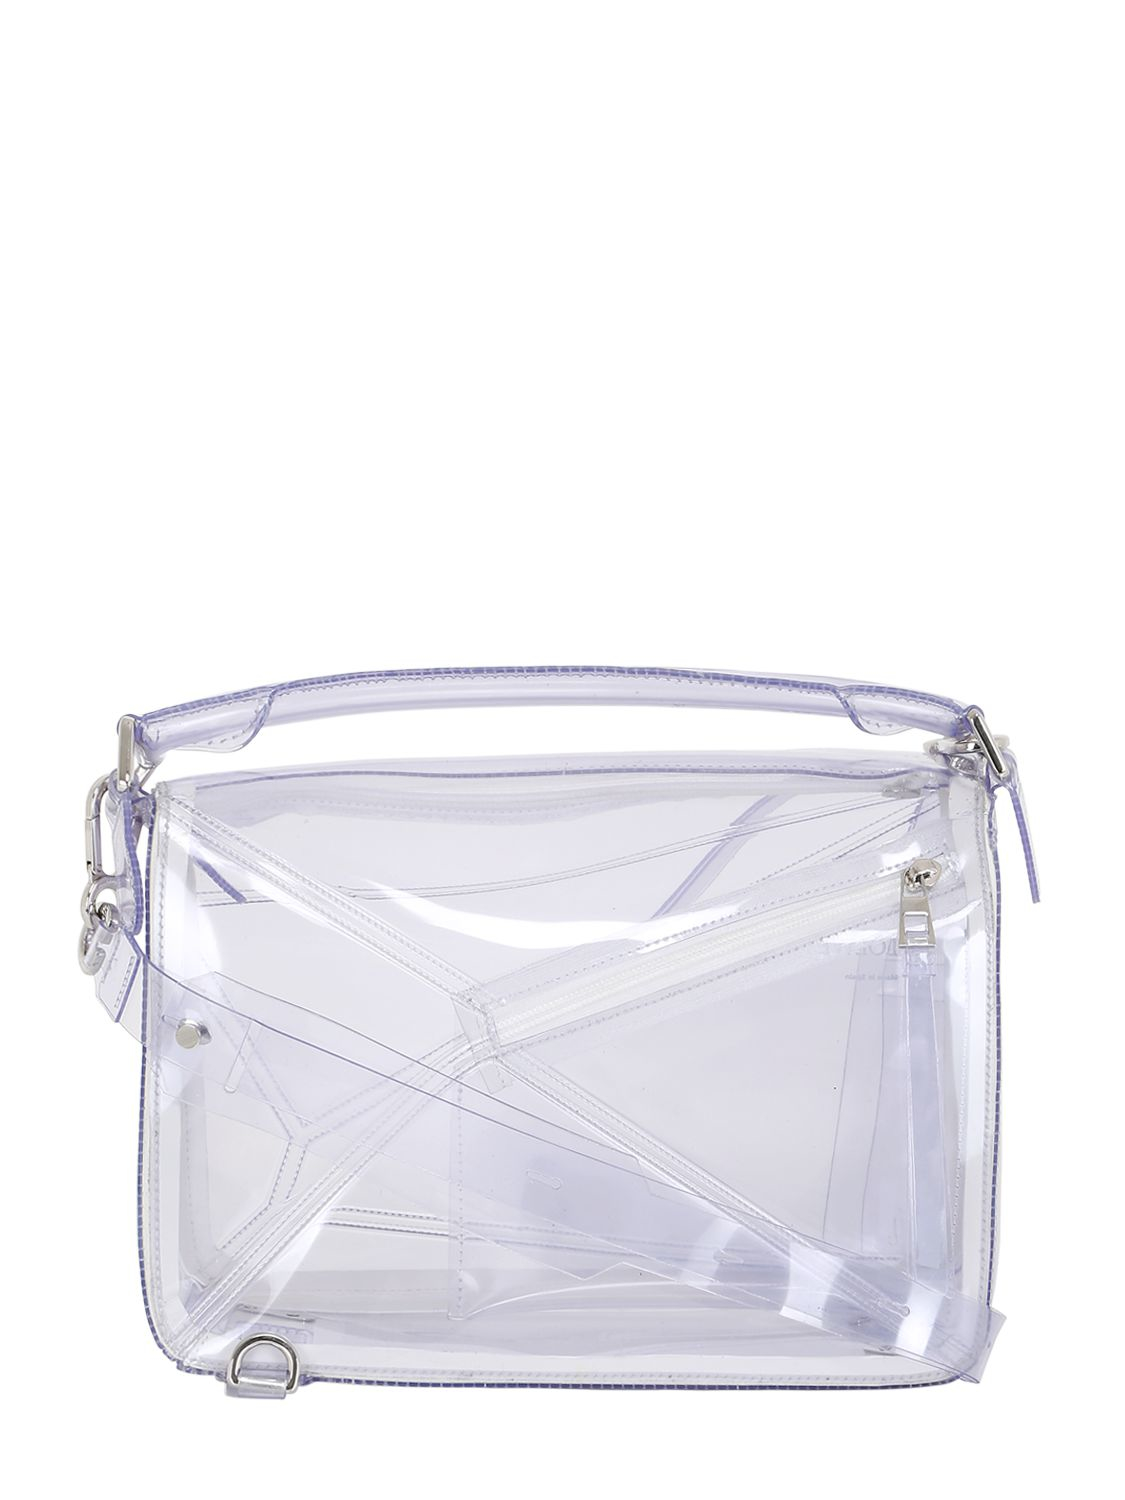 Lyst Loewe Puzzle Transparent Pvc Top Handle Bag